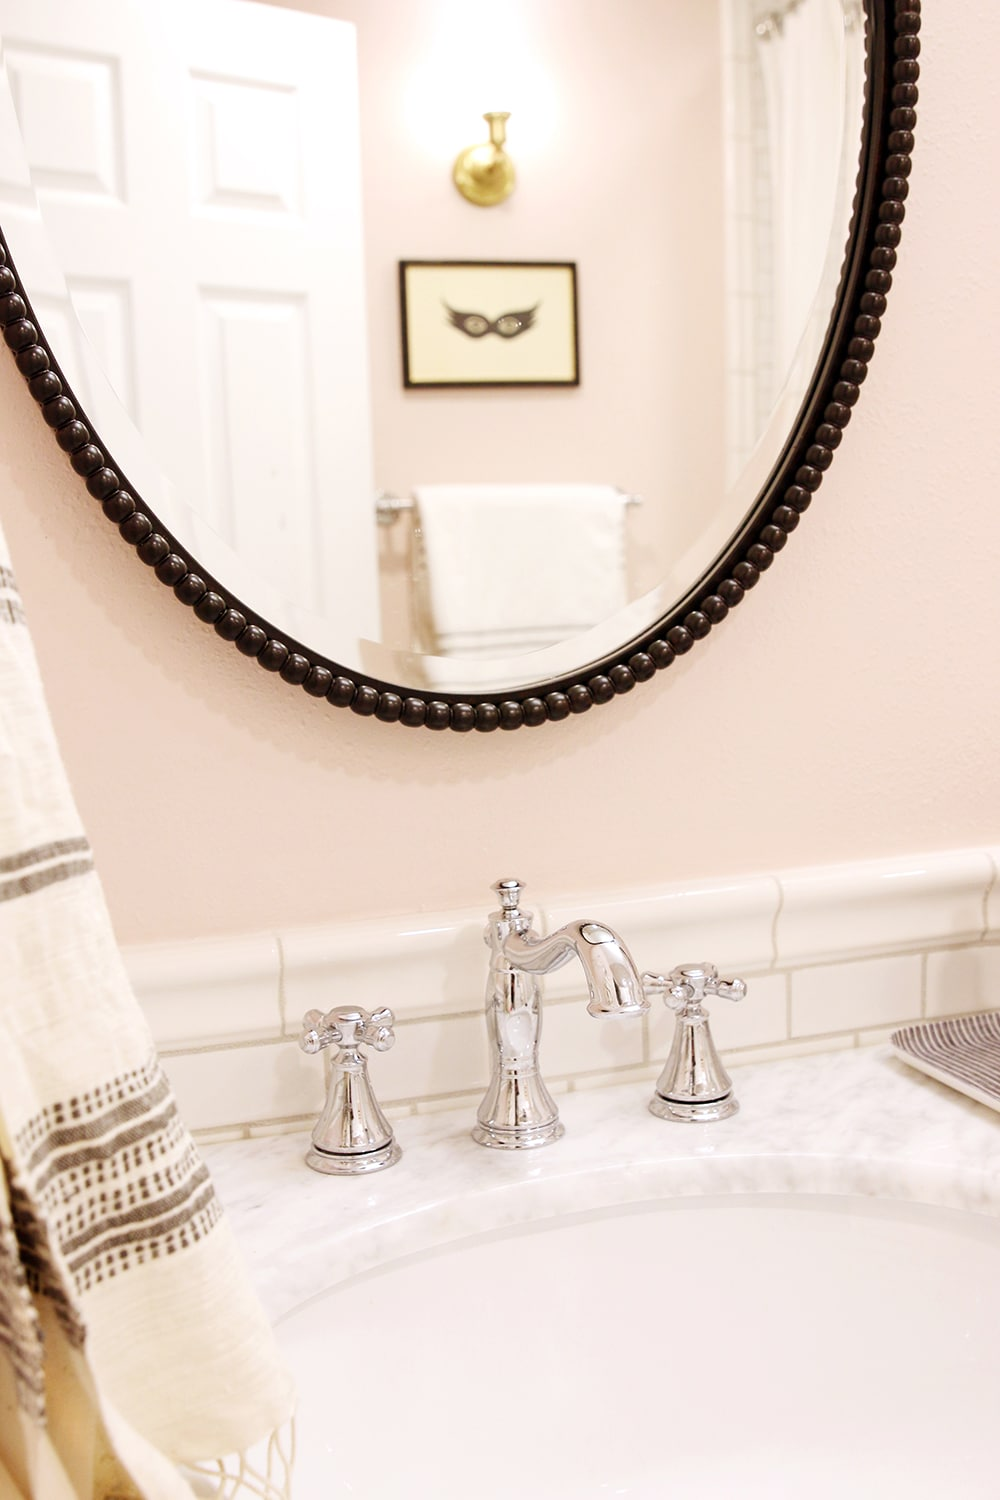 And cabinet pulls with antique brass sconces and a chrome faucet - A Towel Ring And Towel Were Added To Each Side Of The Vanity Along With A Tray And Some Functional But Also Pretty Necessities Finished Off This Corner